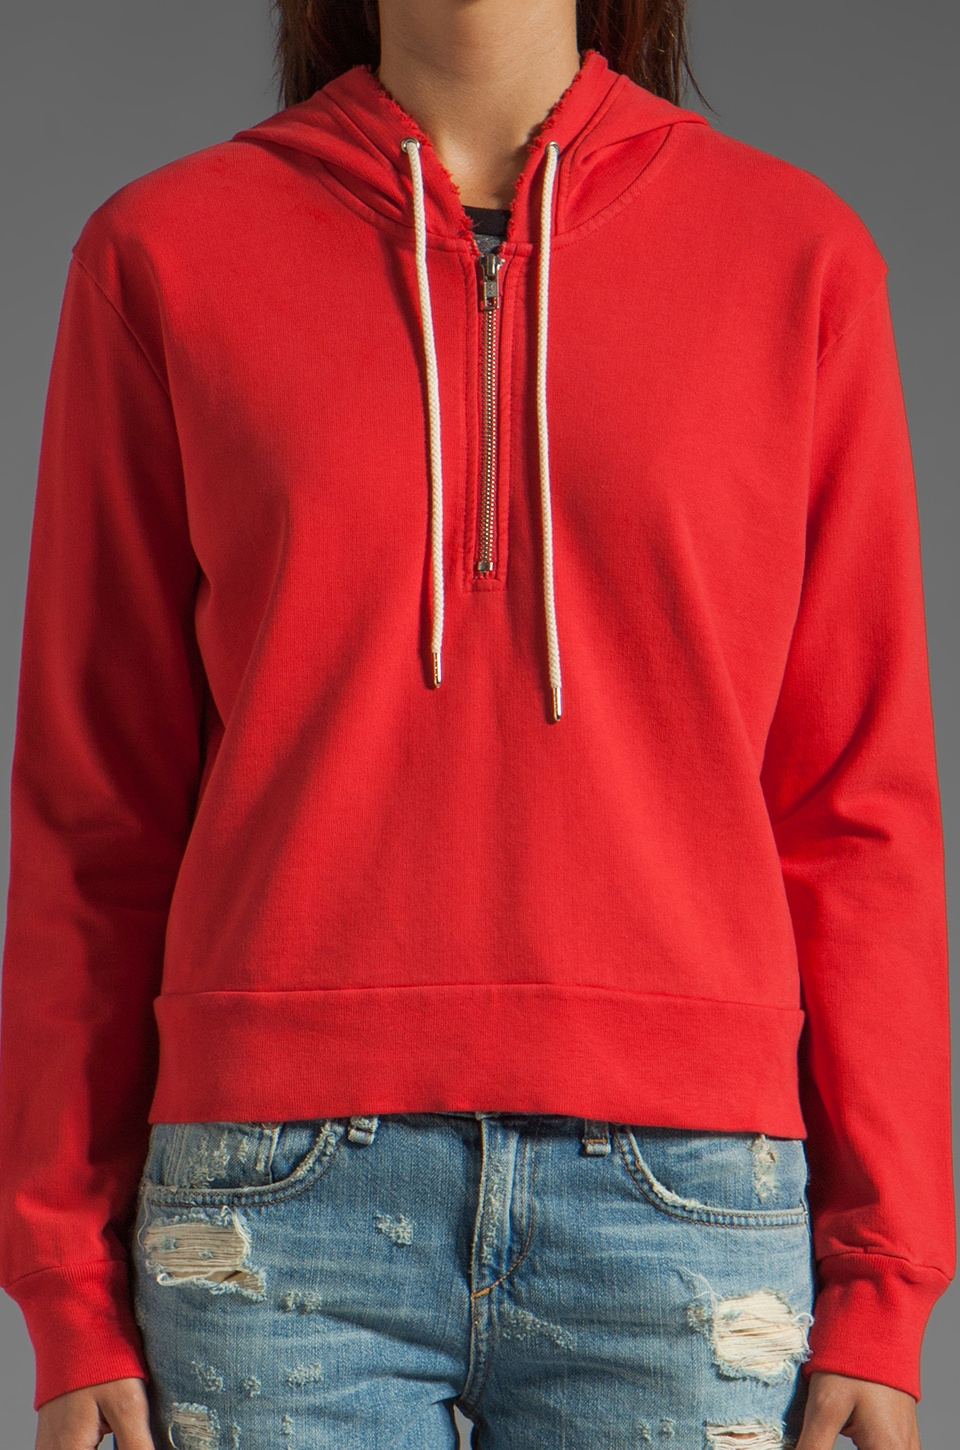 TEXTILE Elizabeth and James 1/2 Zip Perfect Sweatshirt in Strawberry